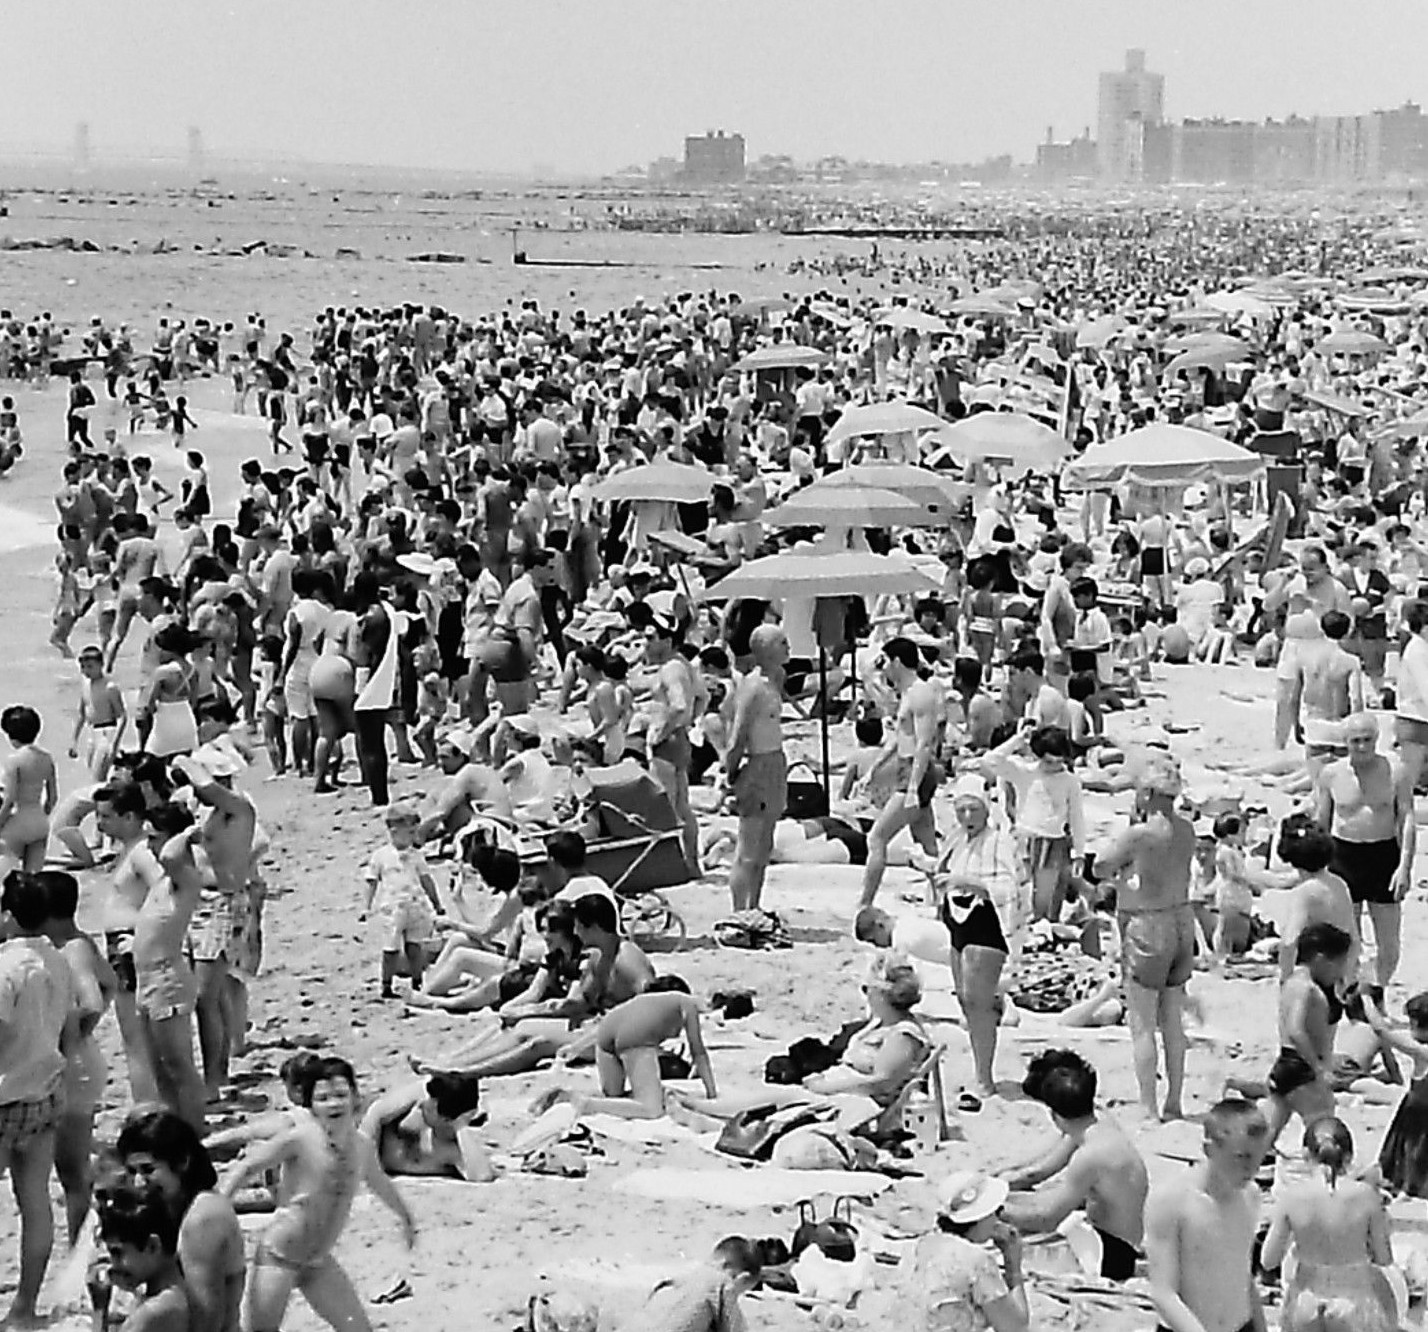 Coney Island Beach: Coney Island Beach Crowds From July 4's Of The Past